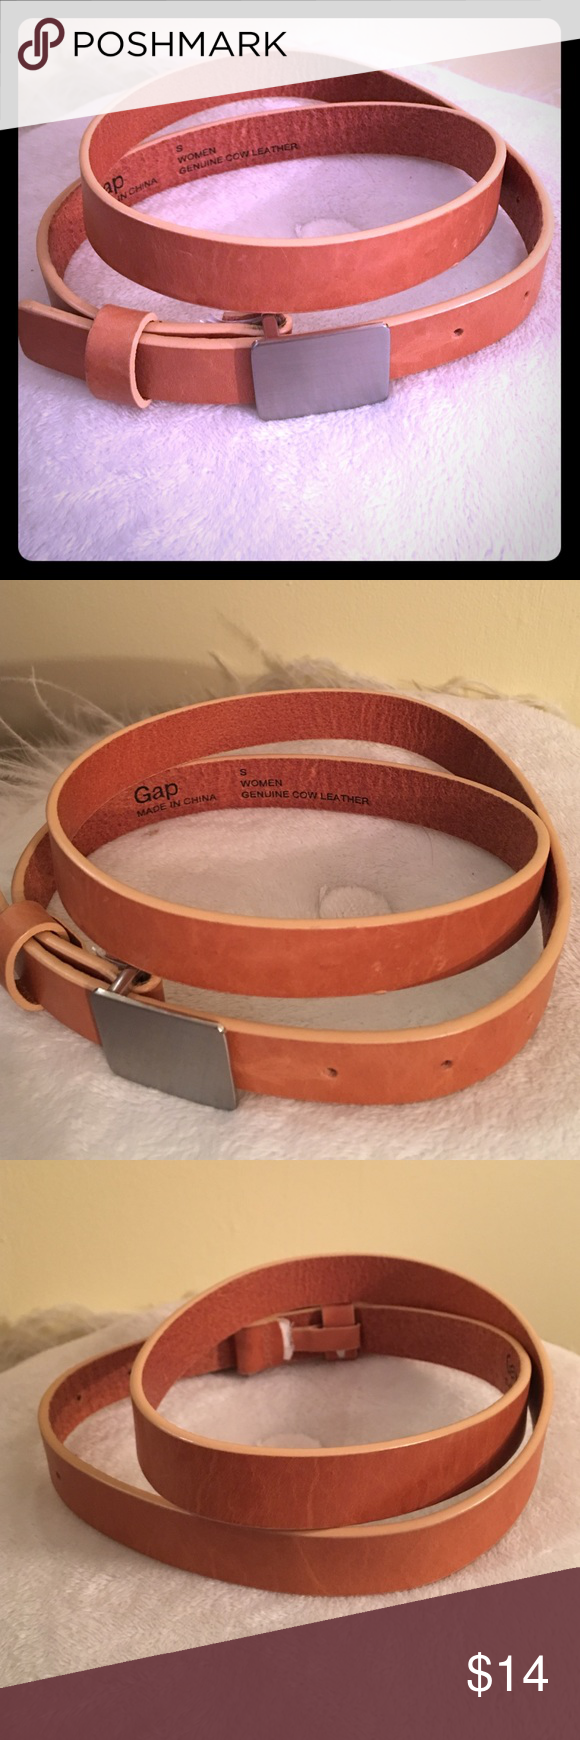 Authentic Camel Cow Hide Leather Thin Belt Good gently worn no torn or worn areas thin camel colored cow hide leather belt with small brushed leather buckle. Great with many outfits and a good closet staple. Gap Accessories Belts